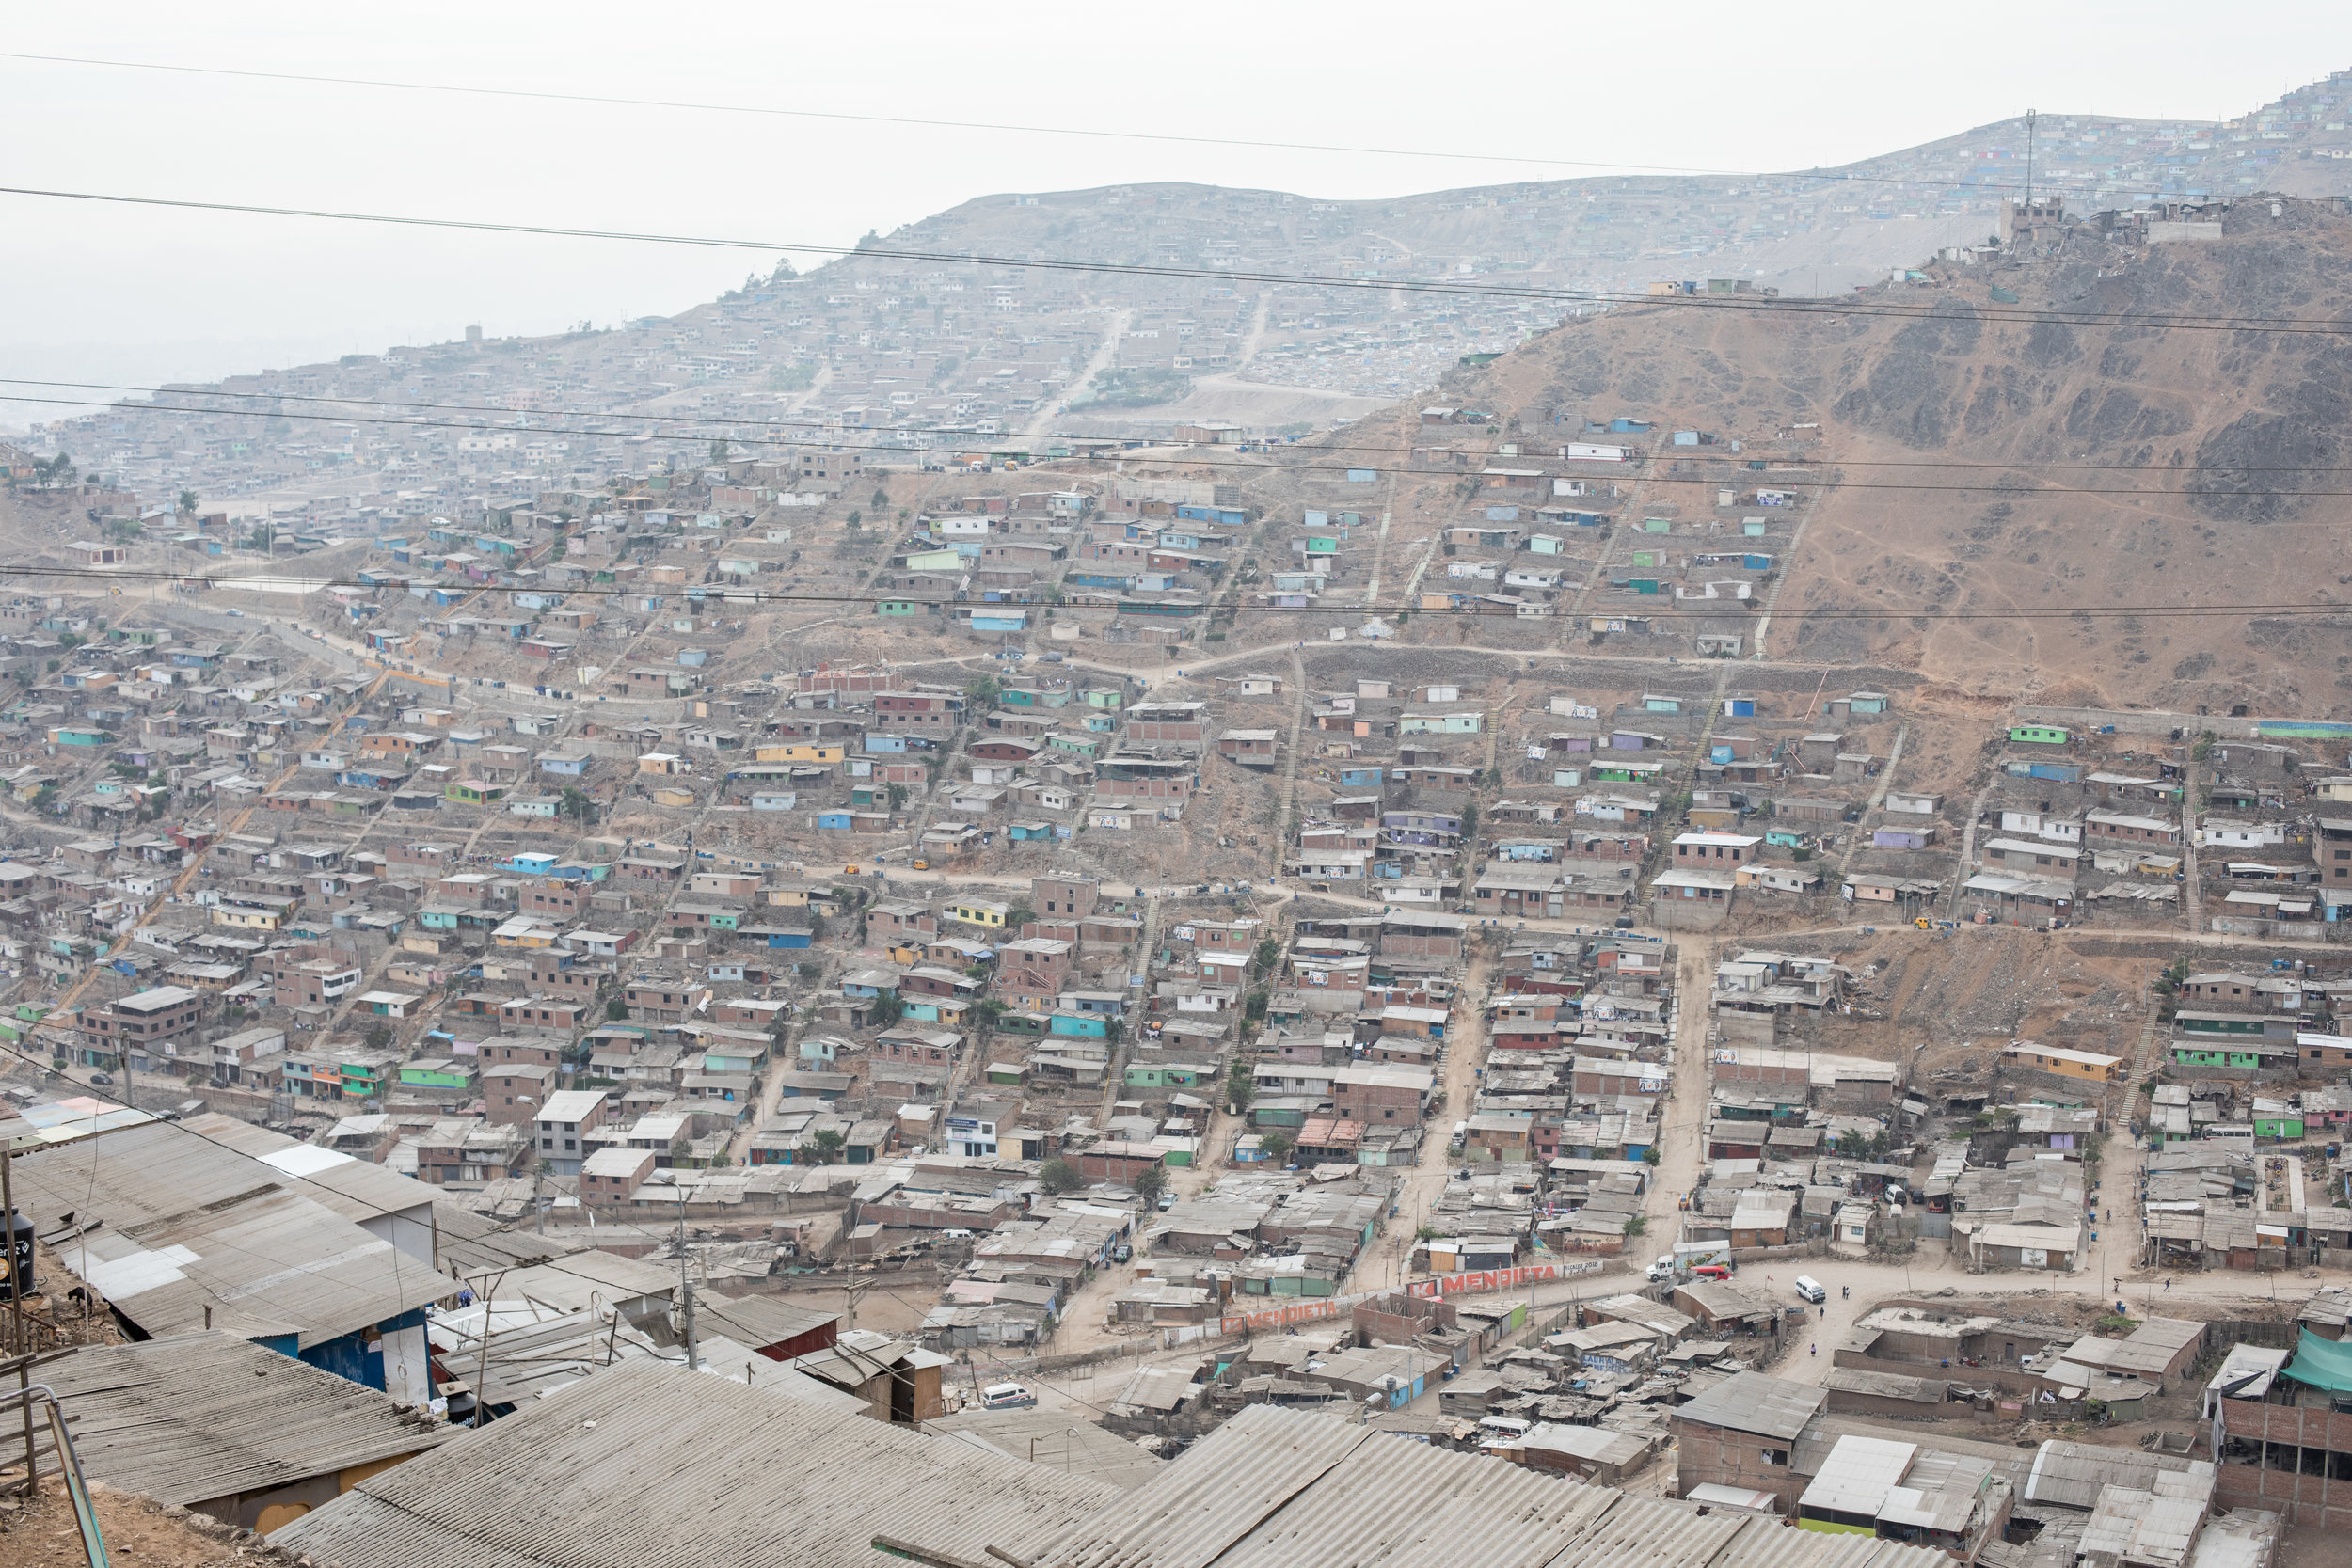 A shanty town in Lima, Peru, photo by Geraint Rowland.